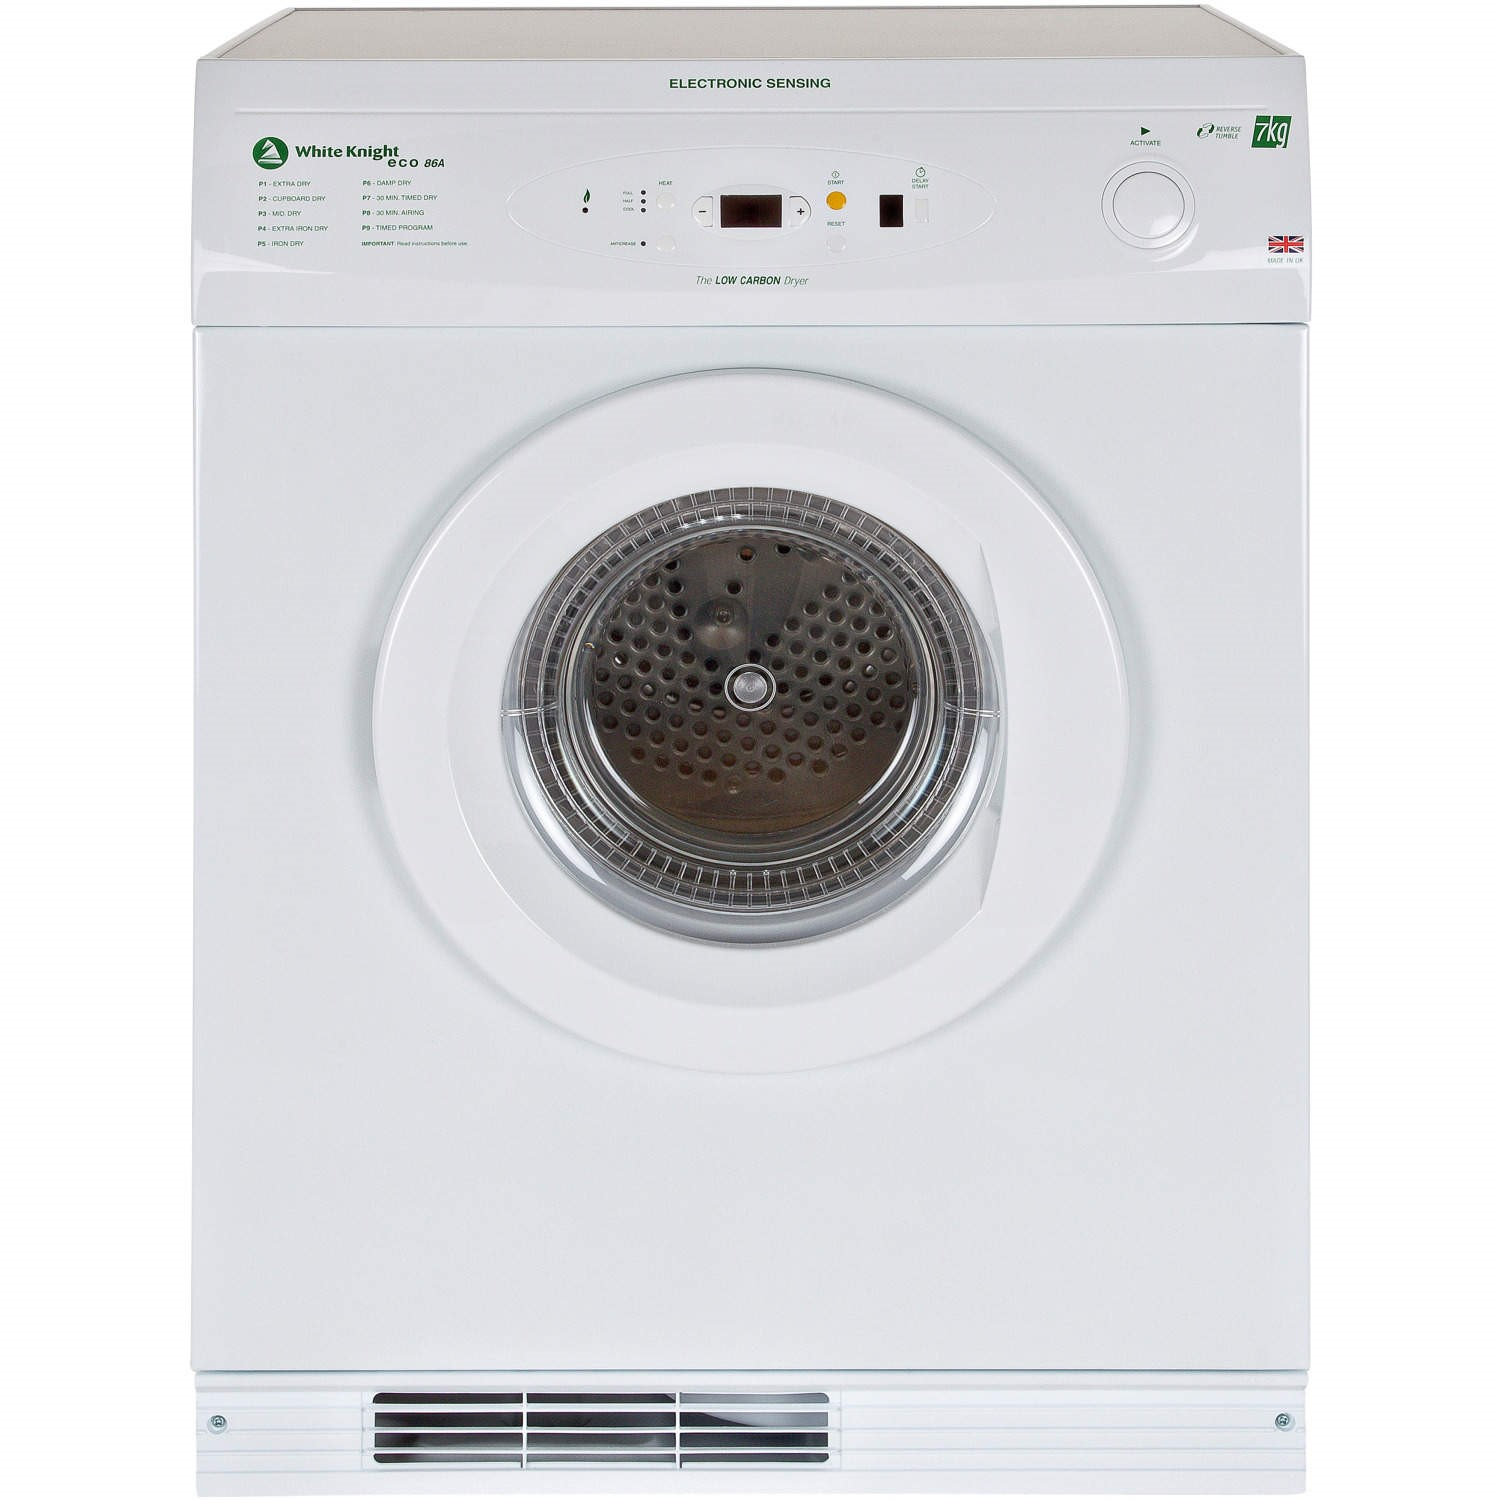 Asko Washing Machine Wiring Diagram User Manual Pdf White Knight Master Eco86a 7kg Freestanding Vented Gas Tumble Dryer Rh Appliancesdirect Co Uk In House And Machines